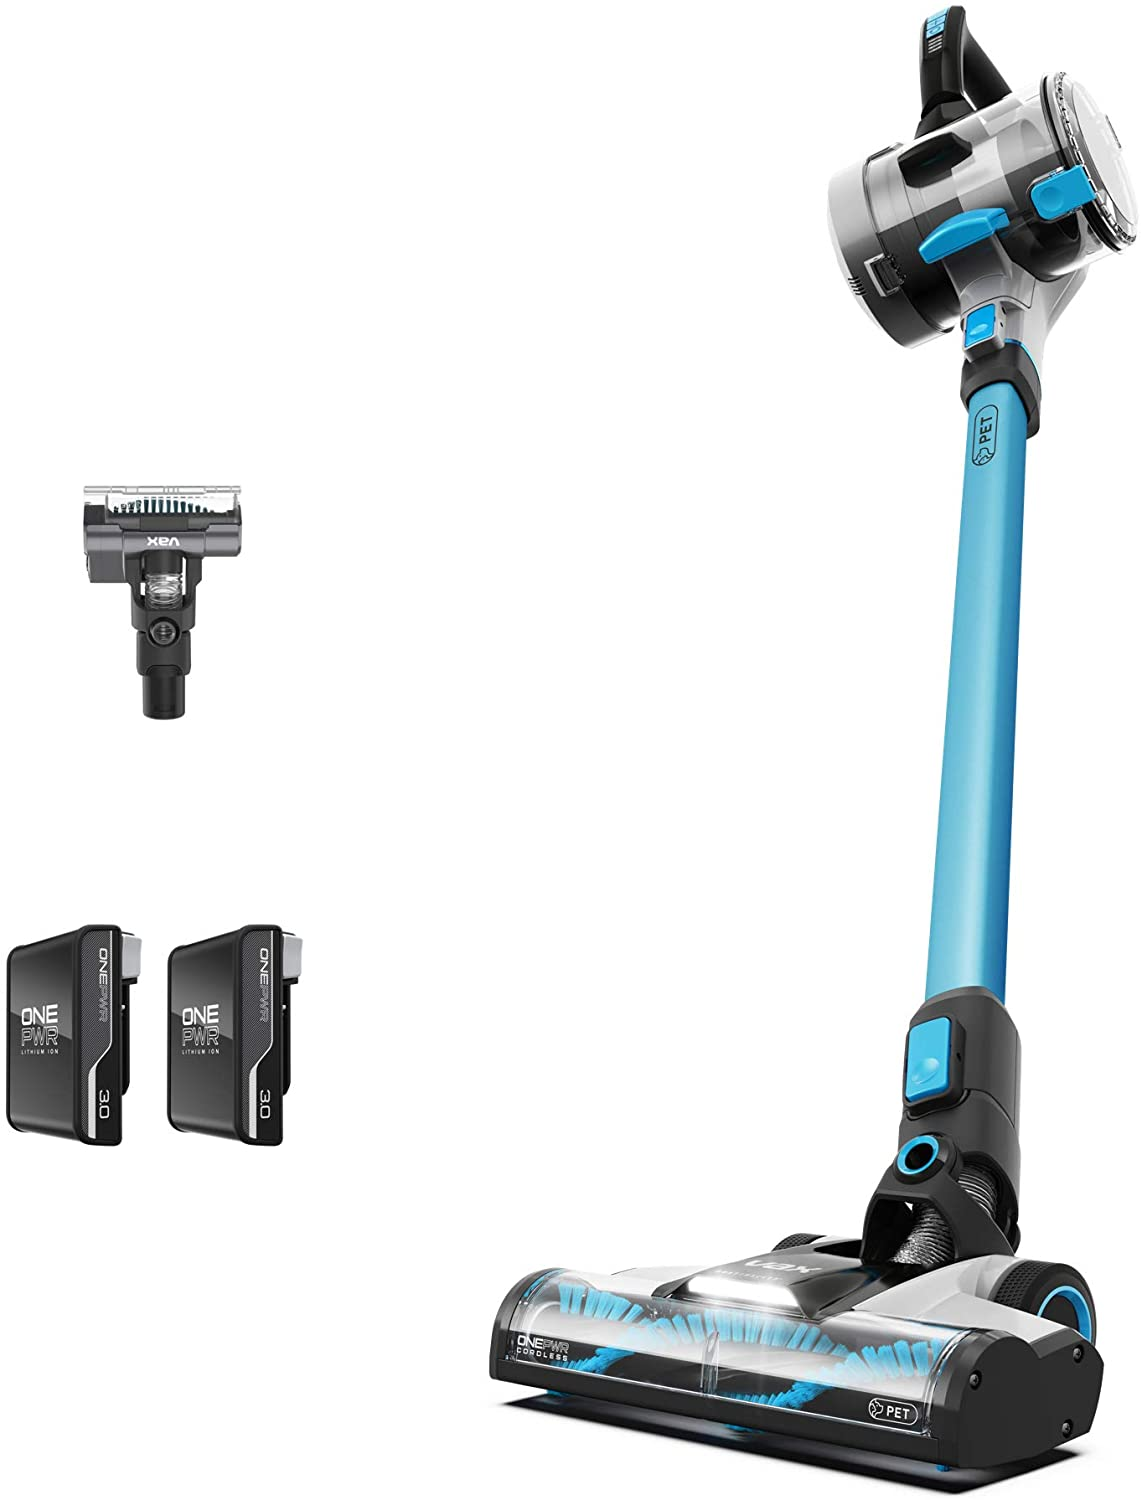 Vax ONEPWR Blade 3 Pet Dual Battery Cordless Vacuum Cleaner with Motorised Pet Tool – CLSV-B3DP